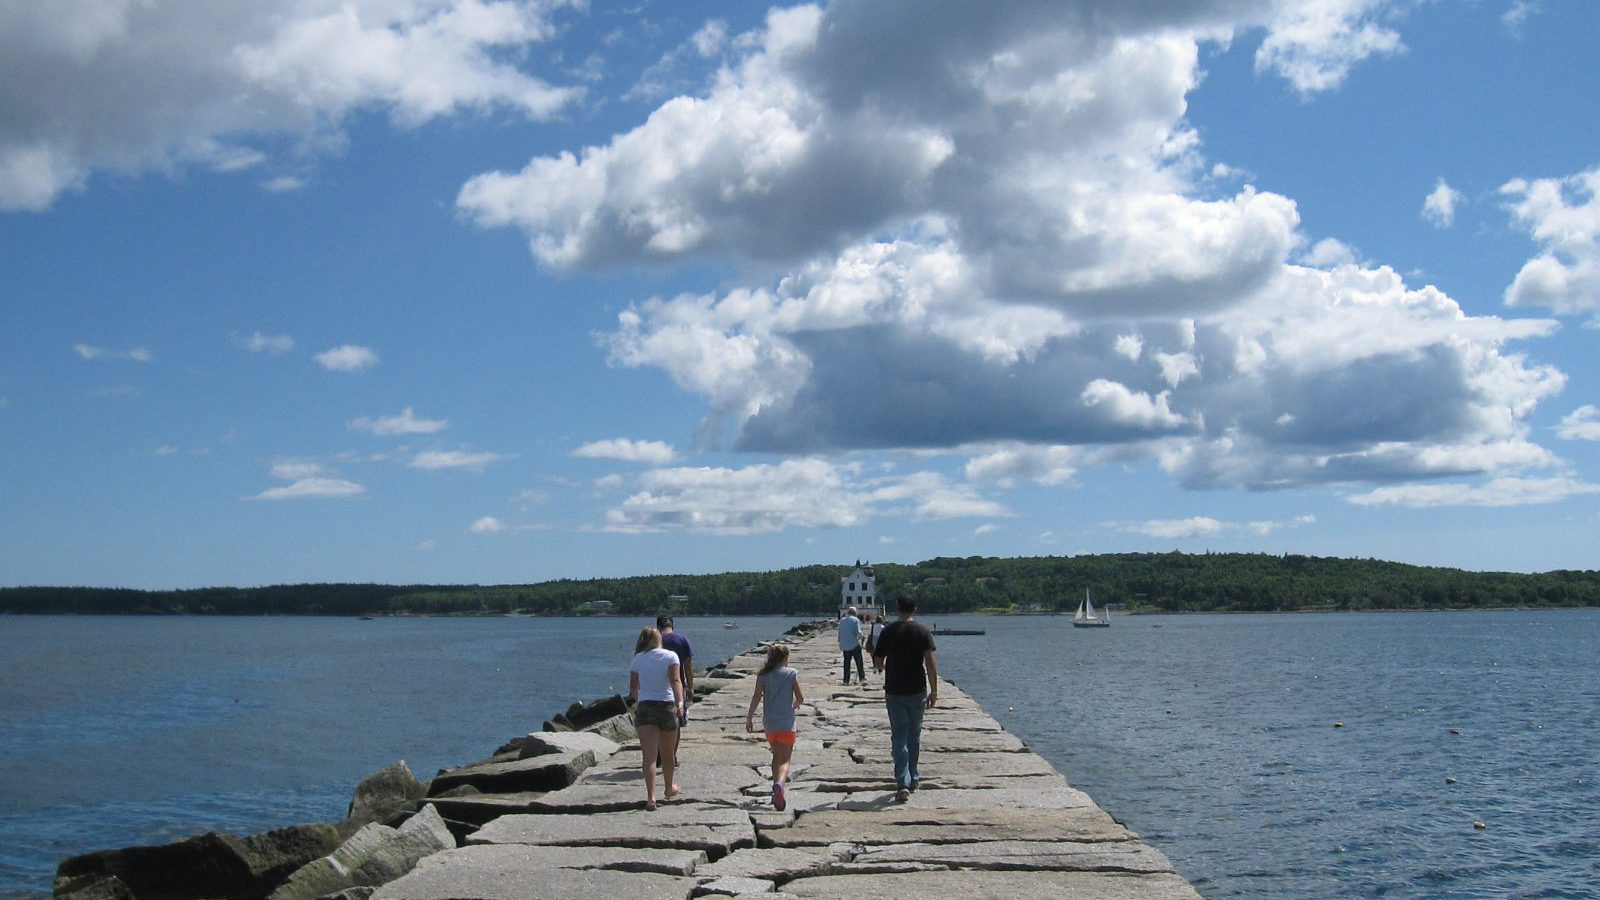 This Aug. 18, 2014, file photo, shows people walking on the Rockland Breakwater, a man-made granite jetty that stretches nearly a mile into Penobscot Bay from Rockland, Maine. A stroll on the jetty to the lighthouse at the other end almost feels like you're walking on water. As a summer vacation destination, Maine has something for everyone, from hiking and beaches to adventure and the arts.